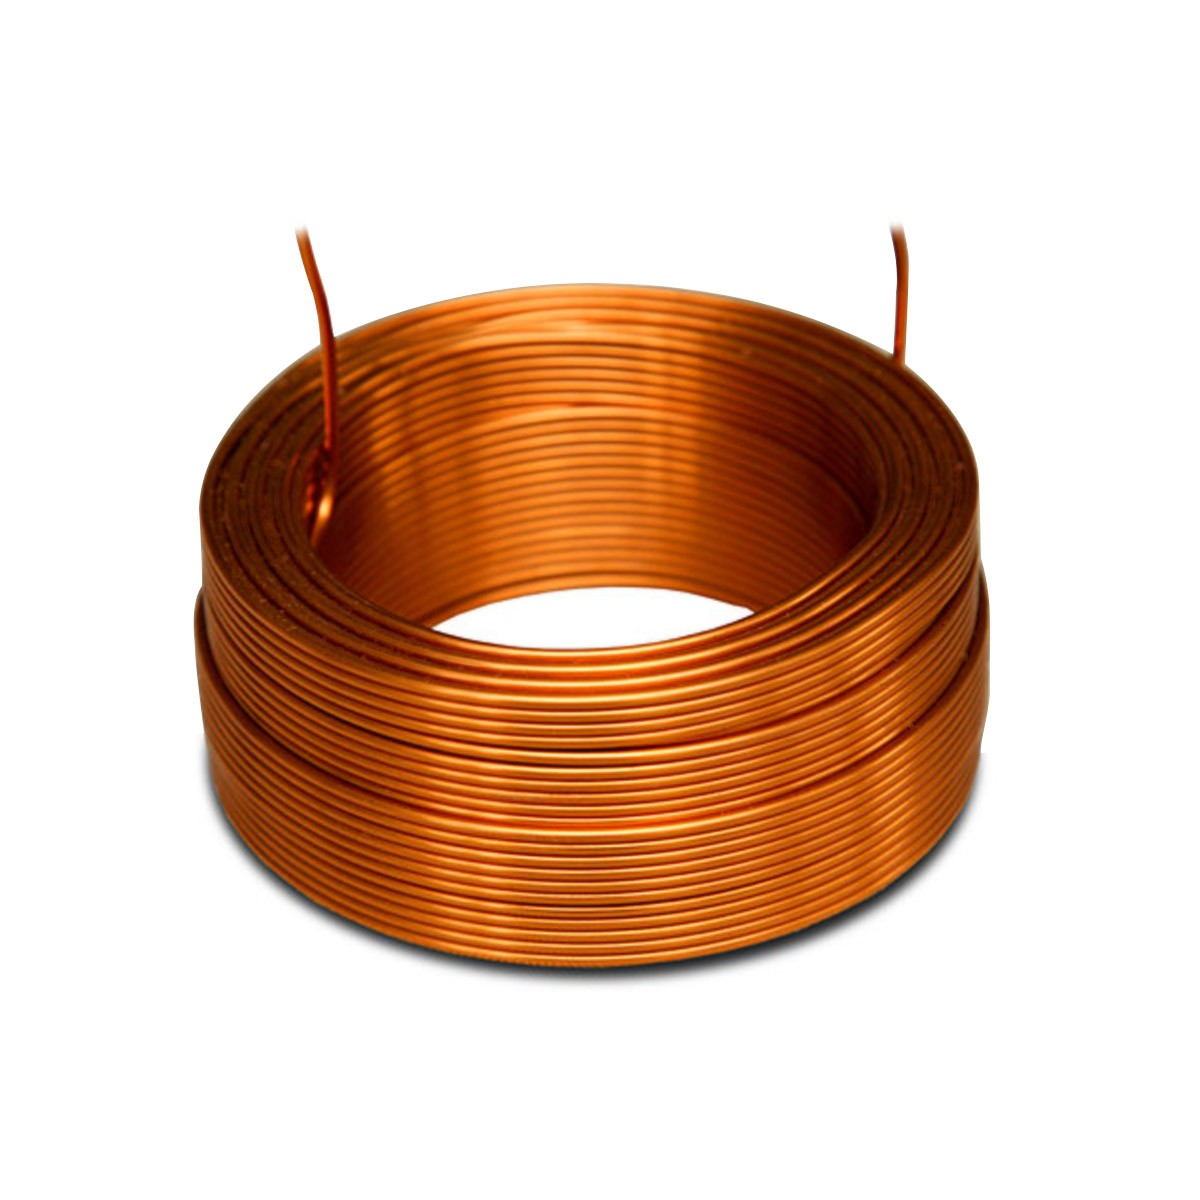 JANTZEN AUDIO 000-1221 4N Copper Air Core Wire Coil 20AWG 2.9mH 43x30mm